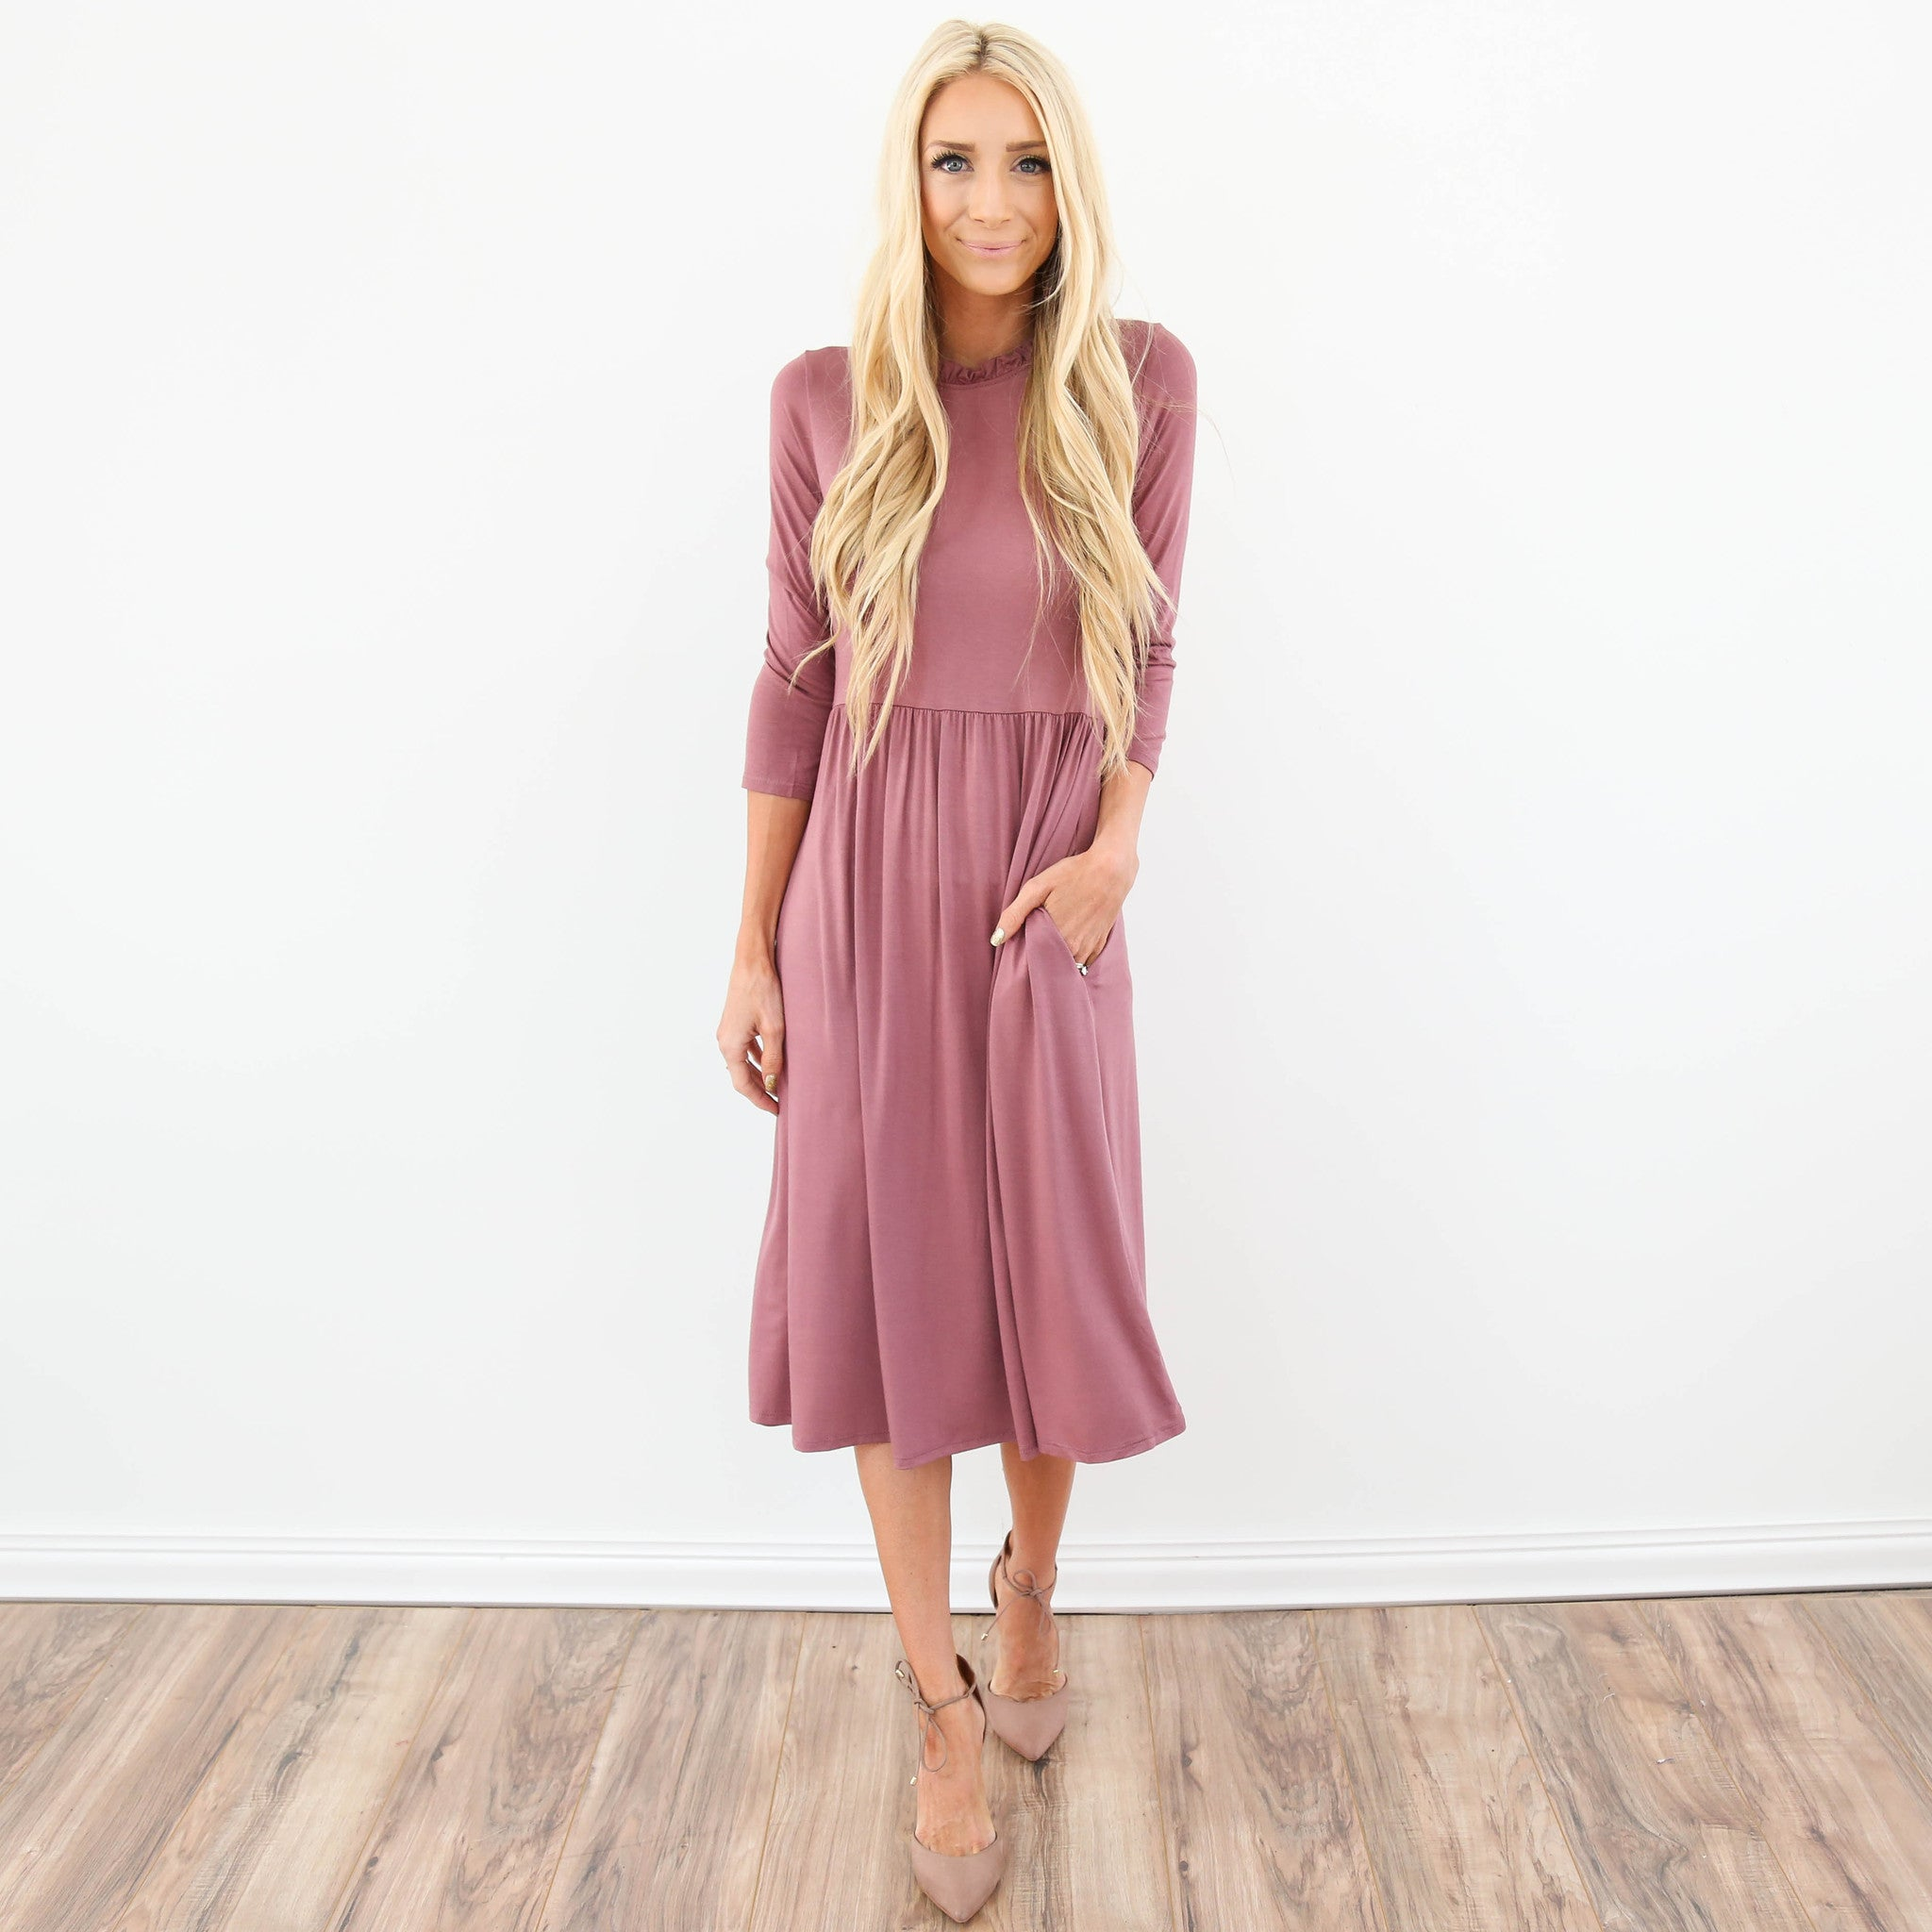 Odette Ruffle Neck Dress in Mauve